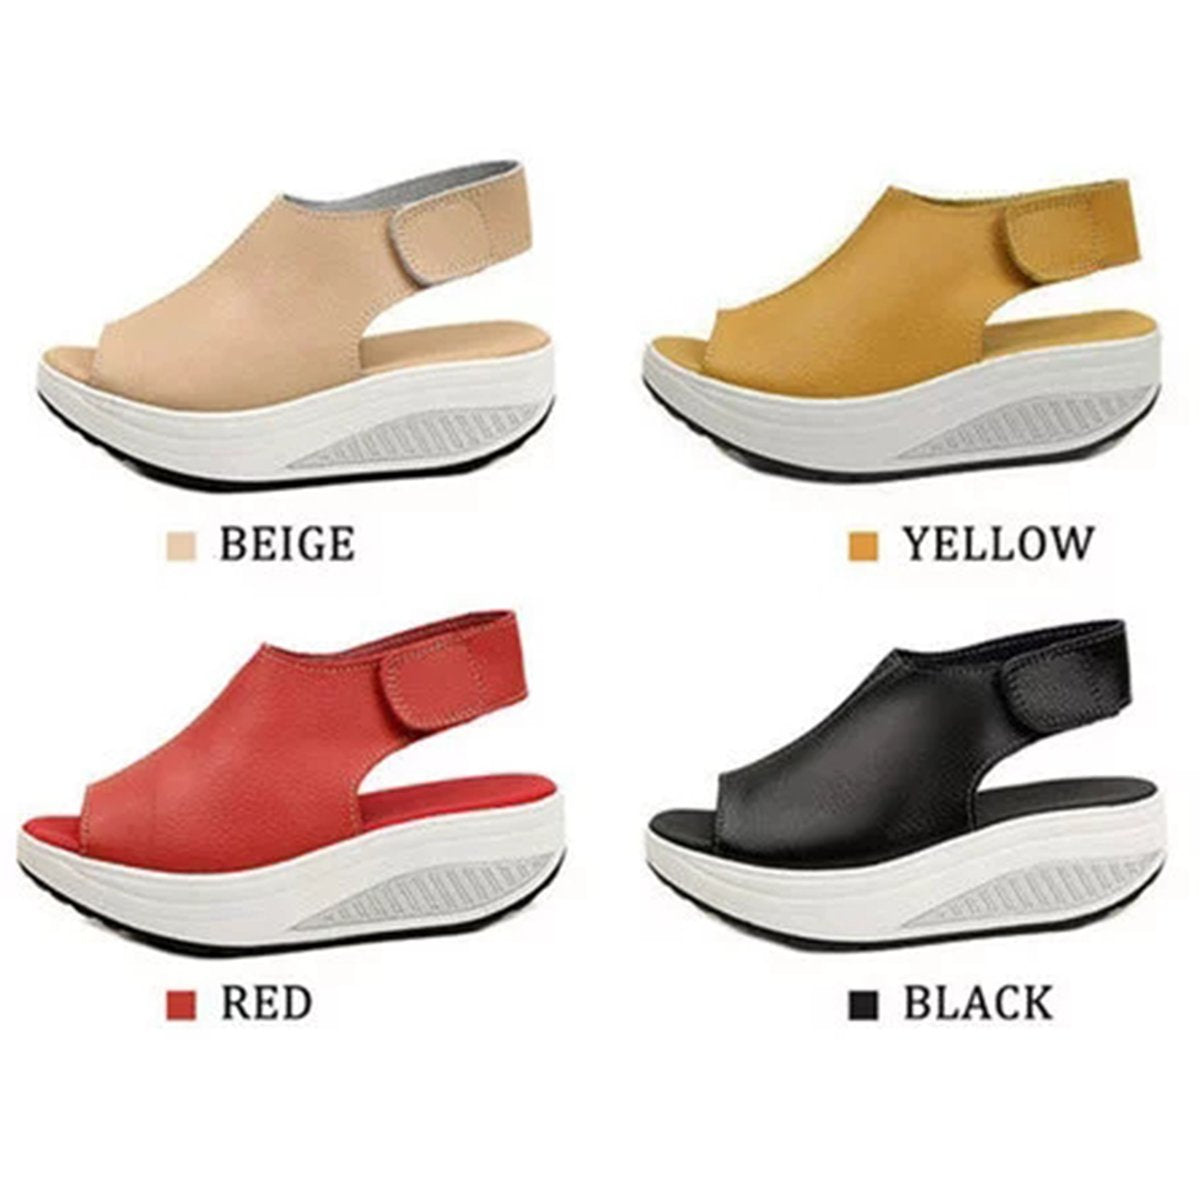 22141466c4bb Casual Microfiber Leather Wedge Heel Magic Tape Sandals Woman Shoes ...